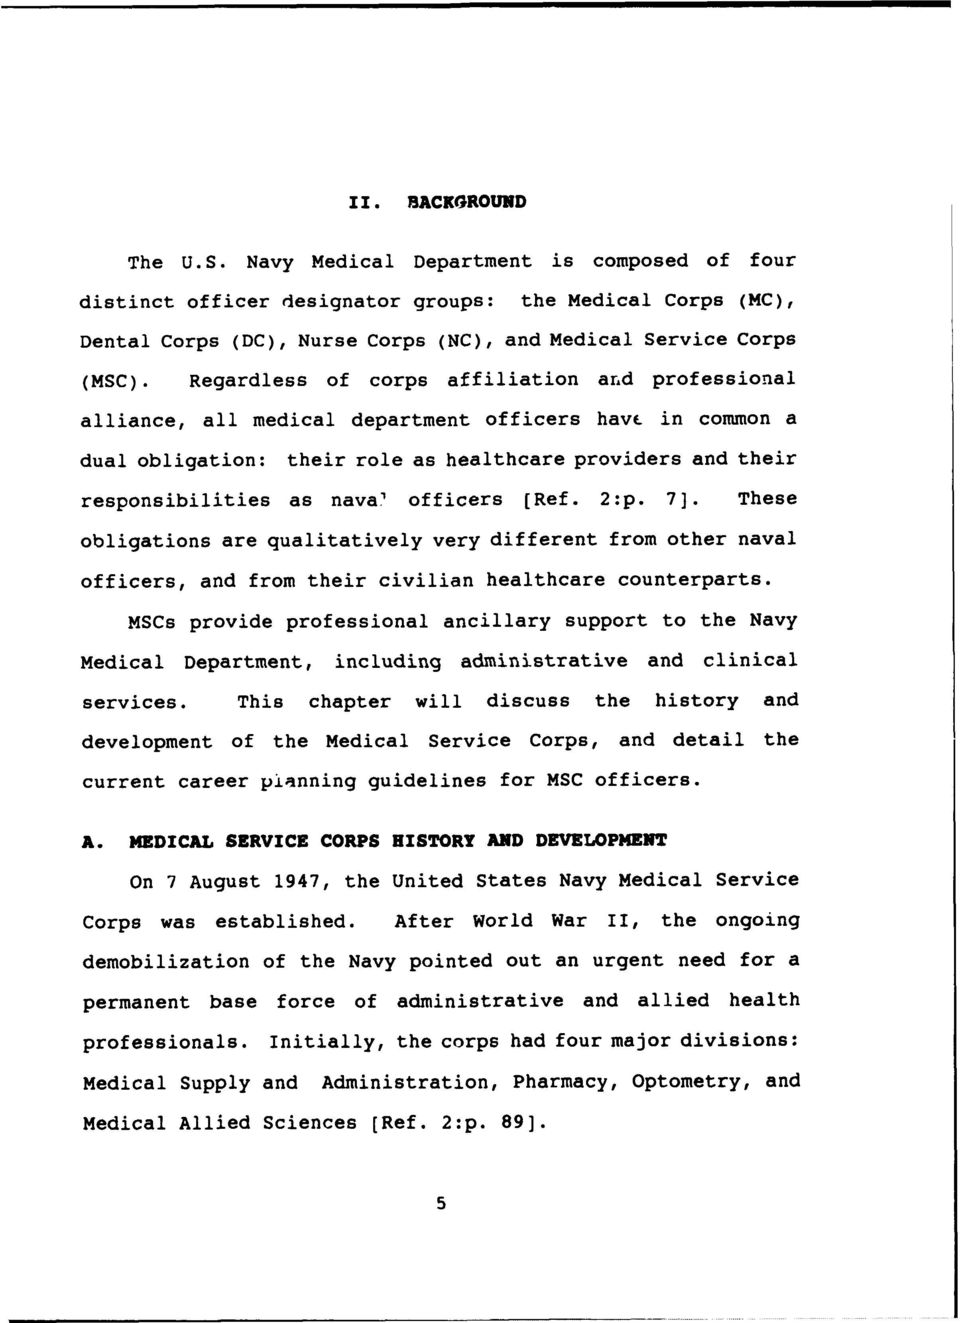 officers [Ref. 2:p. 7]. These obligations are qualitatively very different from other naval officers, and from their civilian healthcare counterparts.